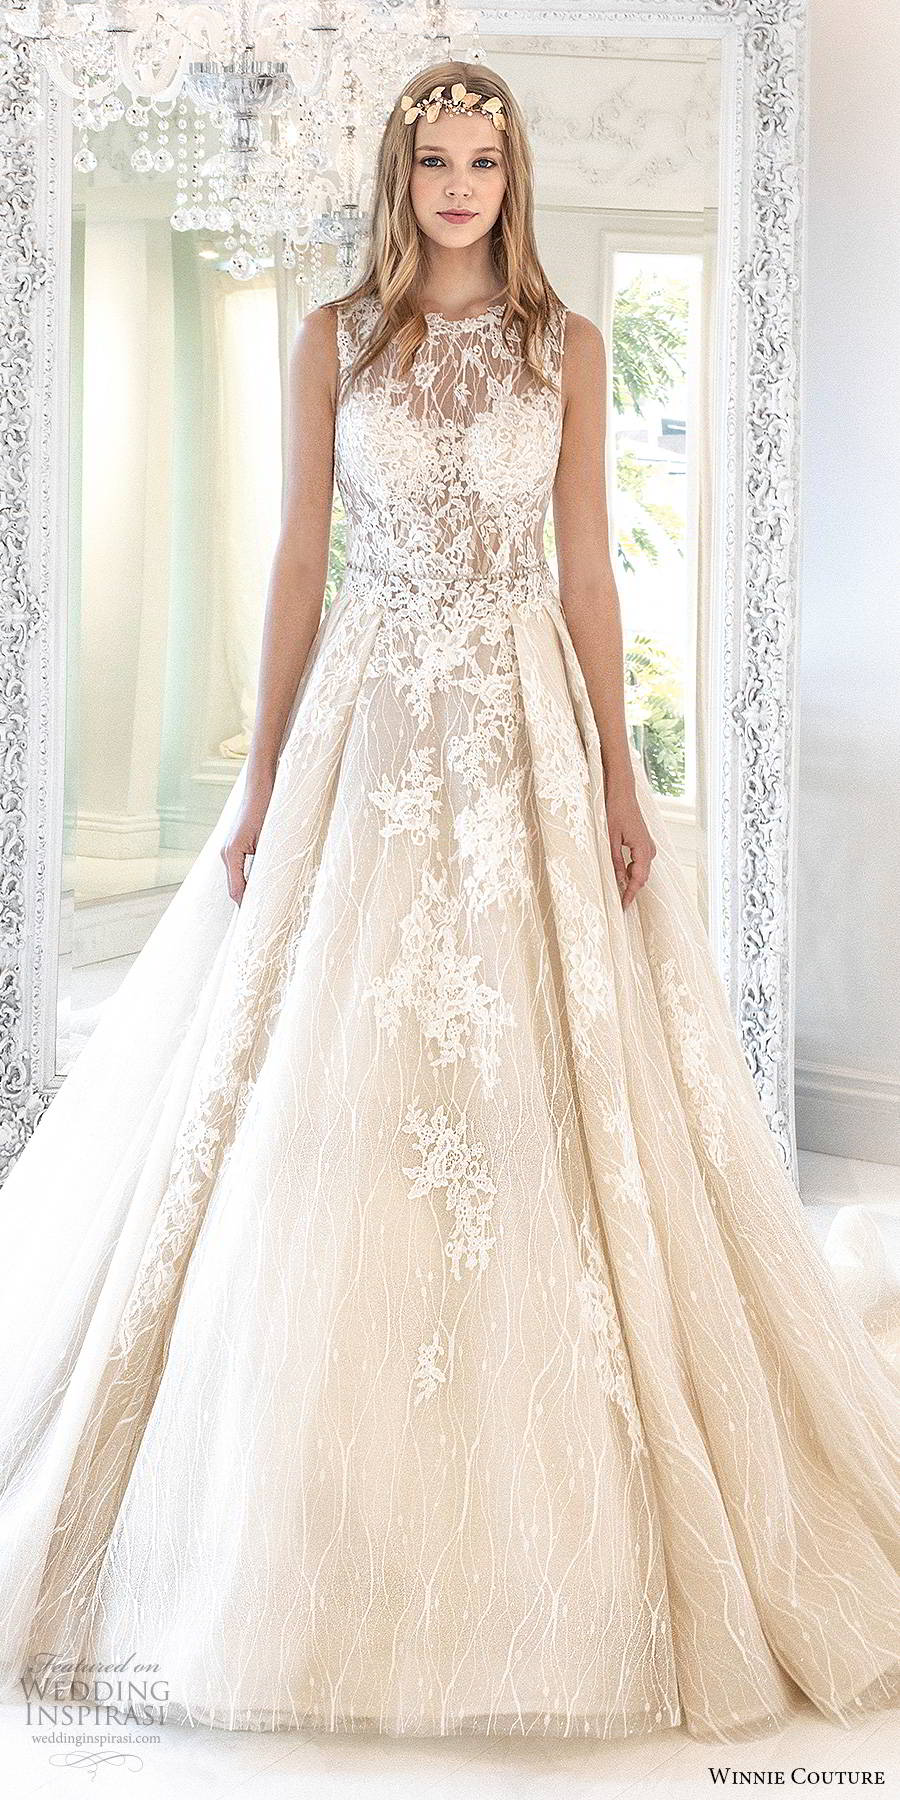 winnie couture 2019 bridal sleeveless illusion jewel sweetheart neckline fully embellished lace romantic a line wedding dress ball gown skirt blush chapel train (3) mv